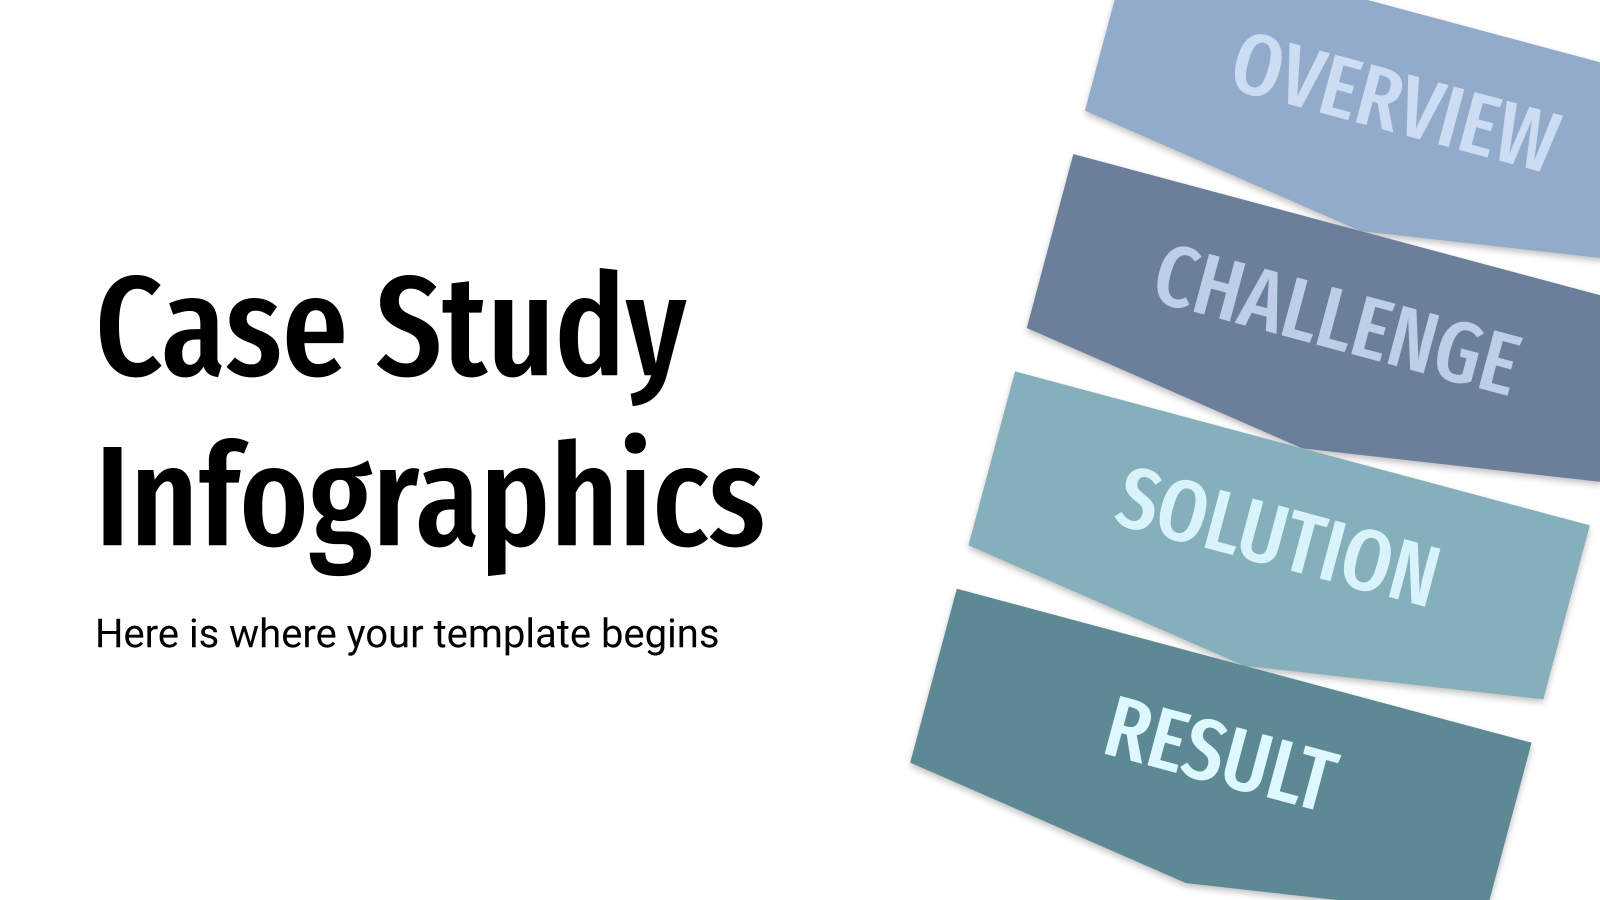 Case Study Infographics presentation template